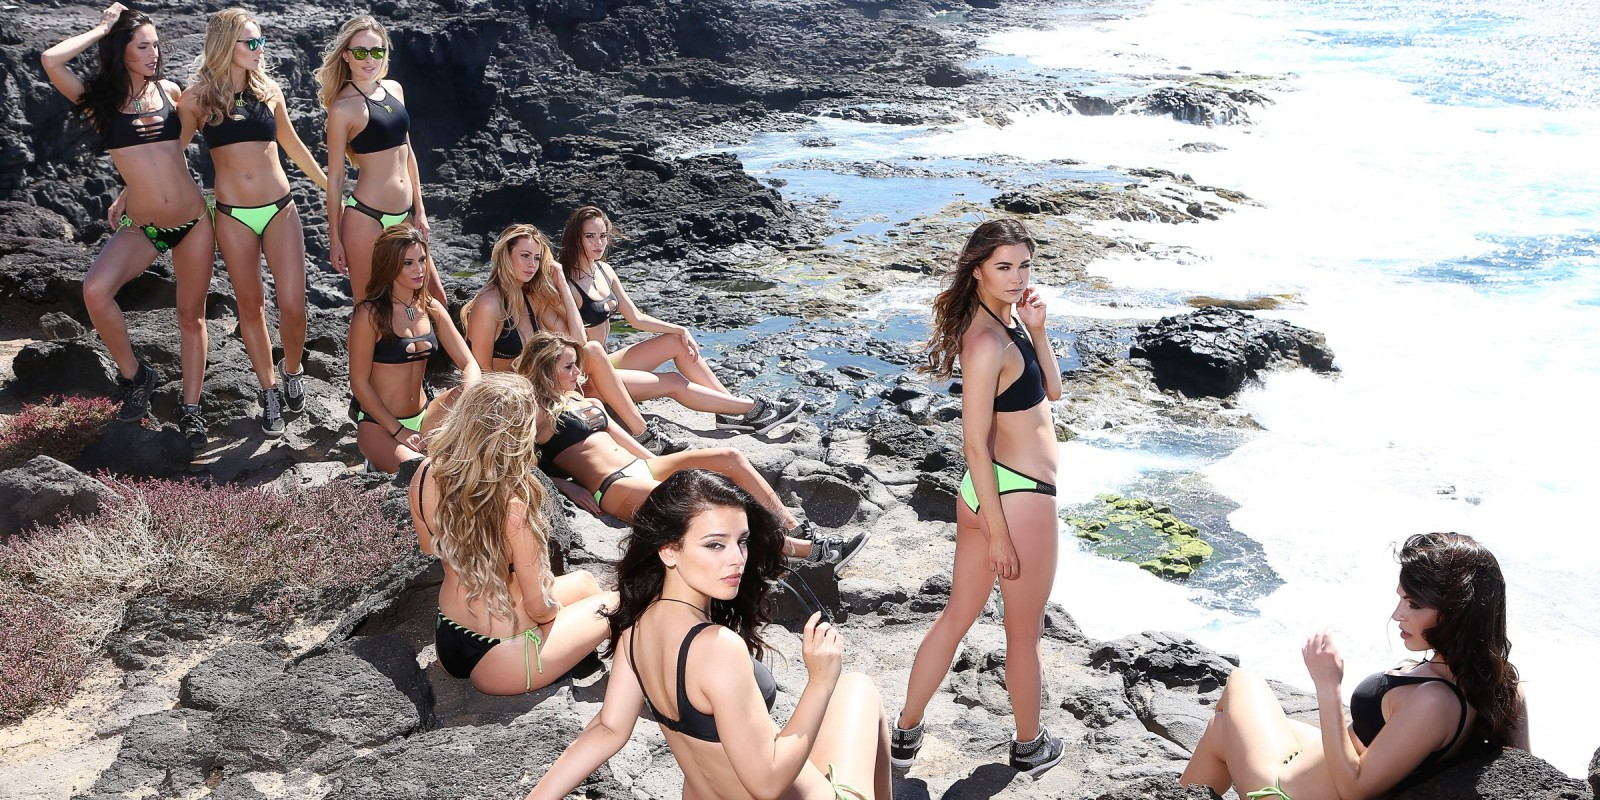 Monster Girls took some time out from Boot Camp for a hot cliff side beach shoot.